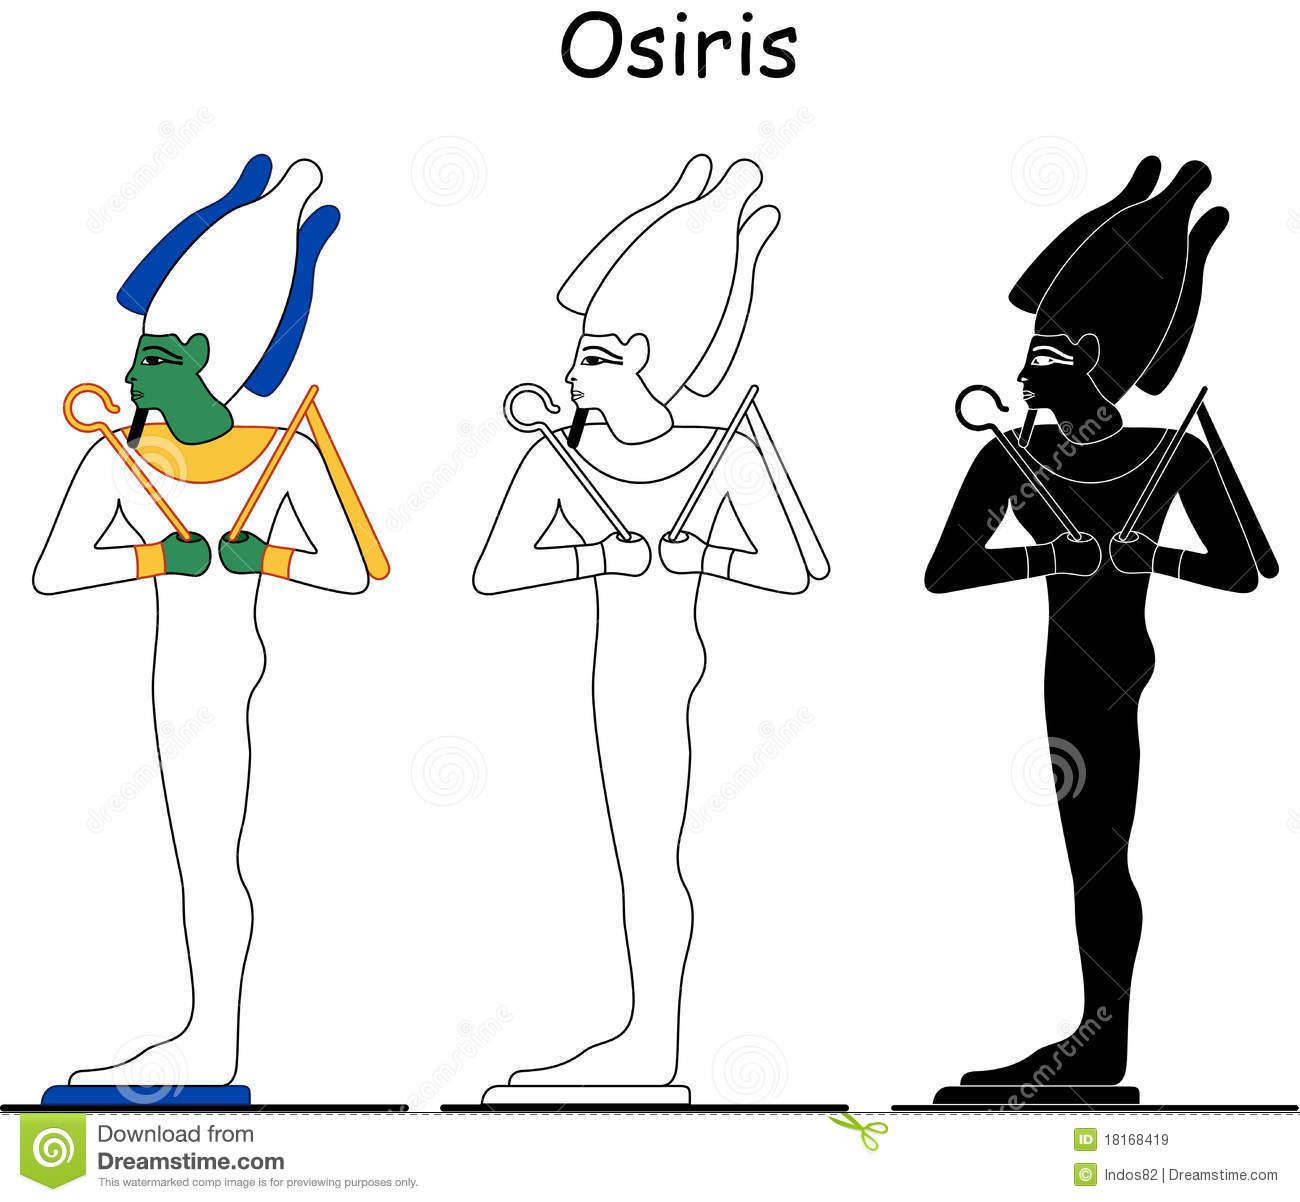 God Osiris Powers - Symbols and Mythology